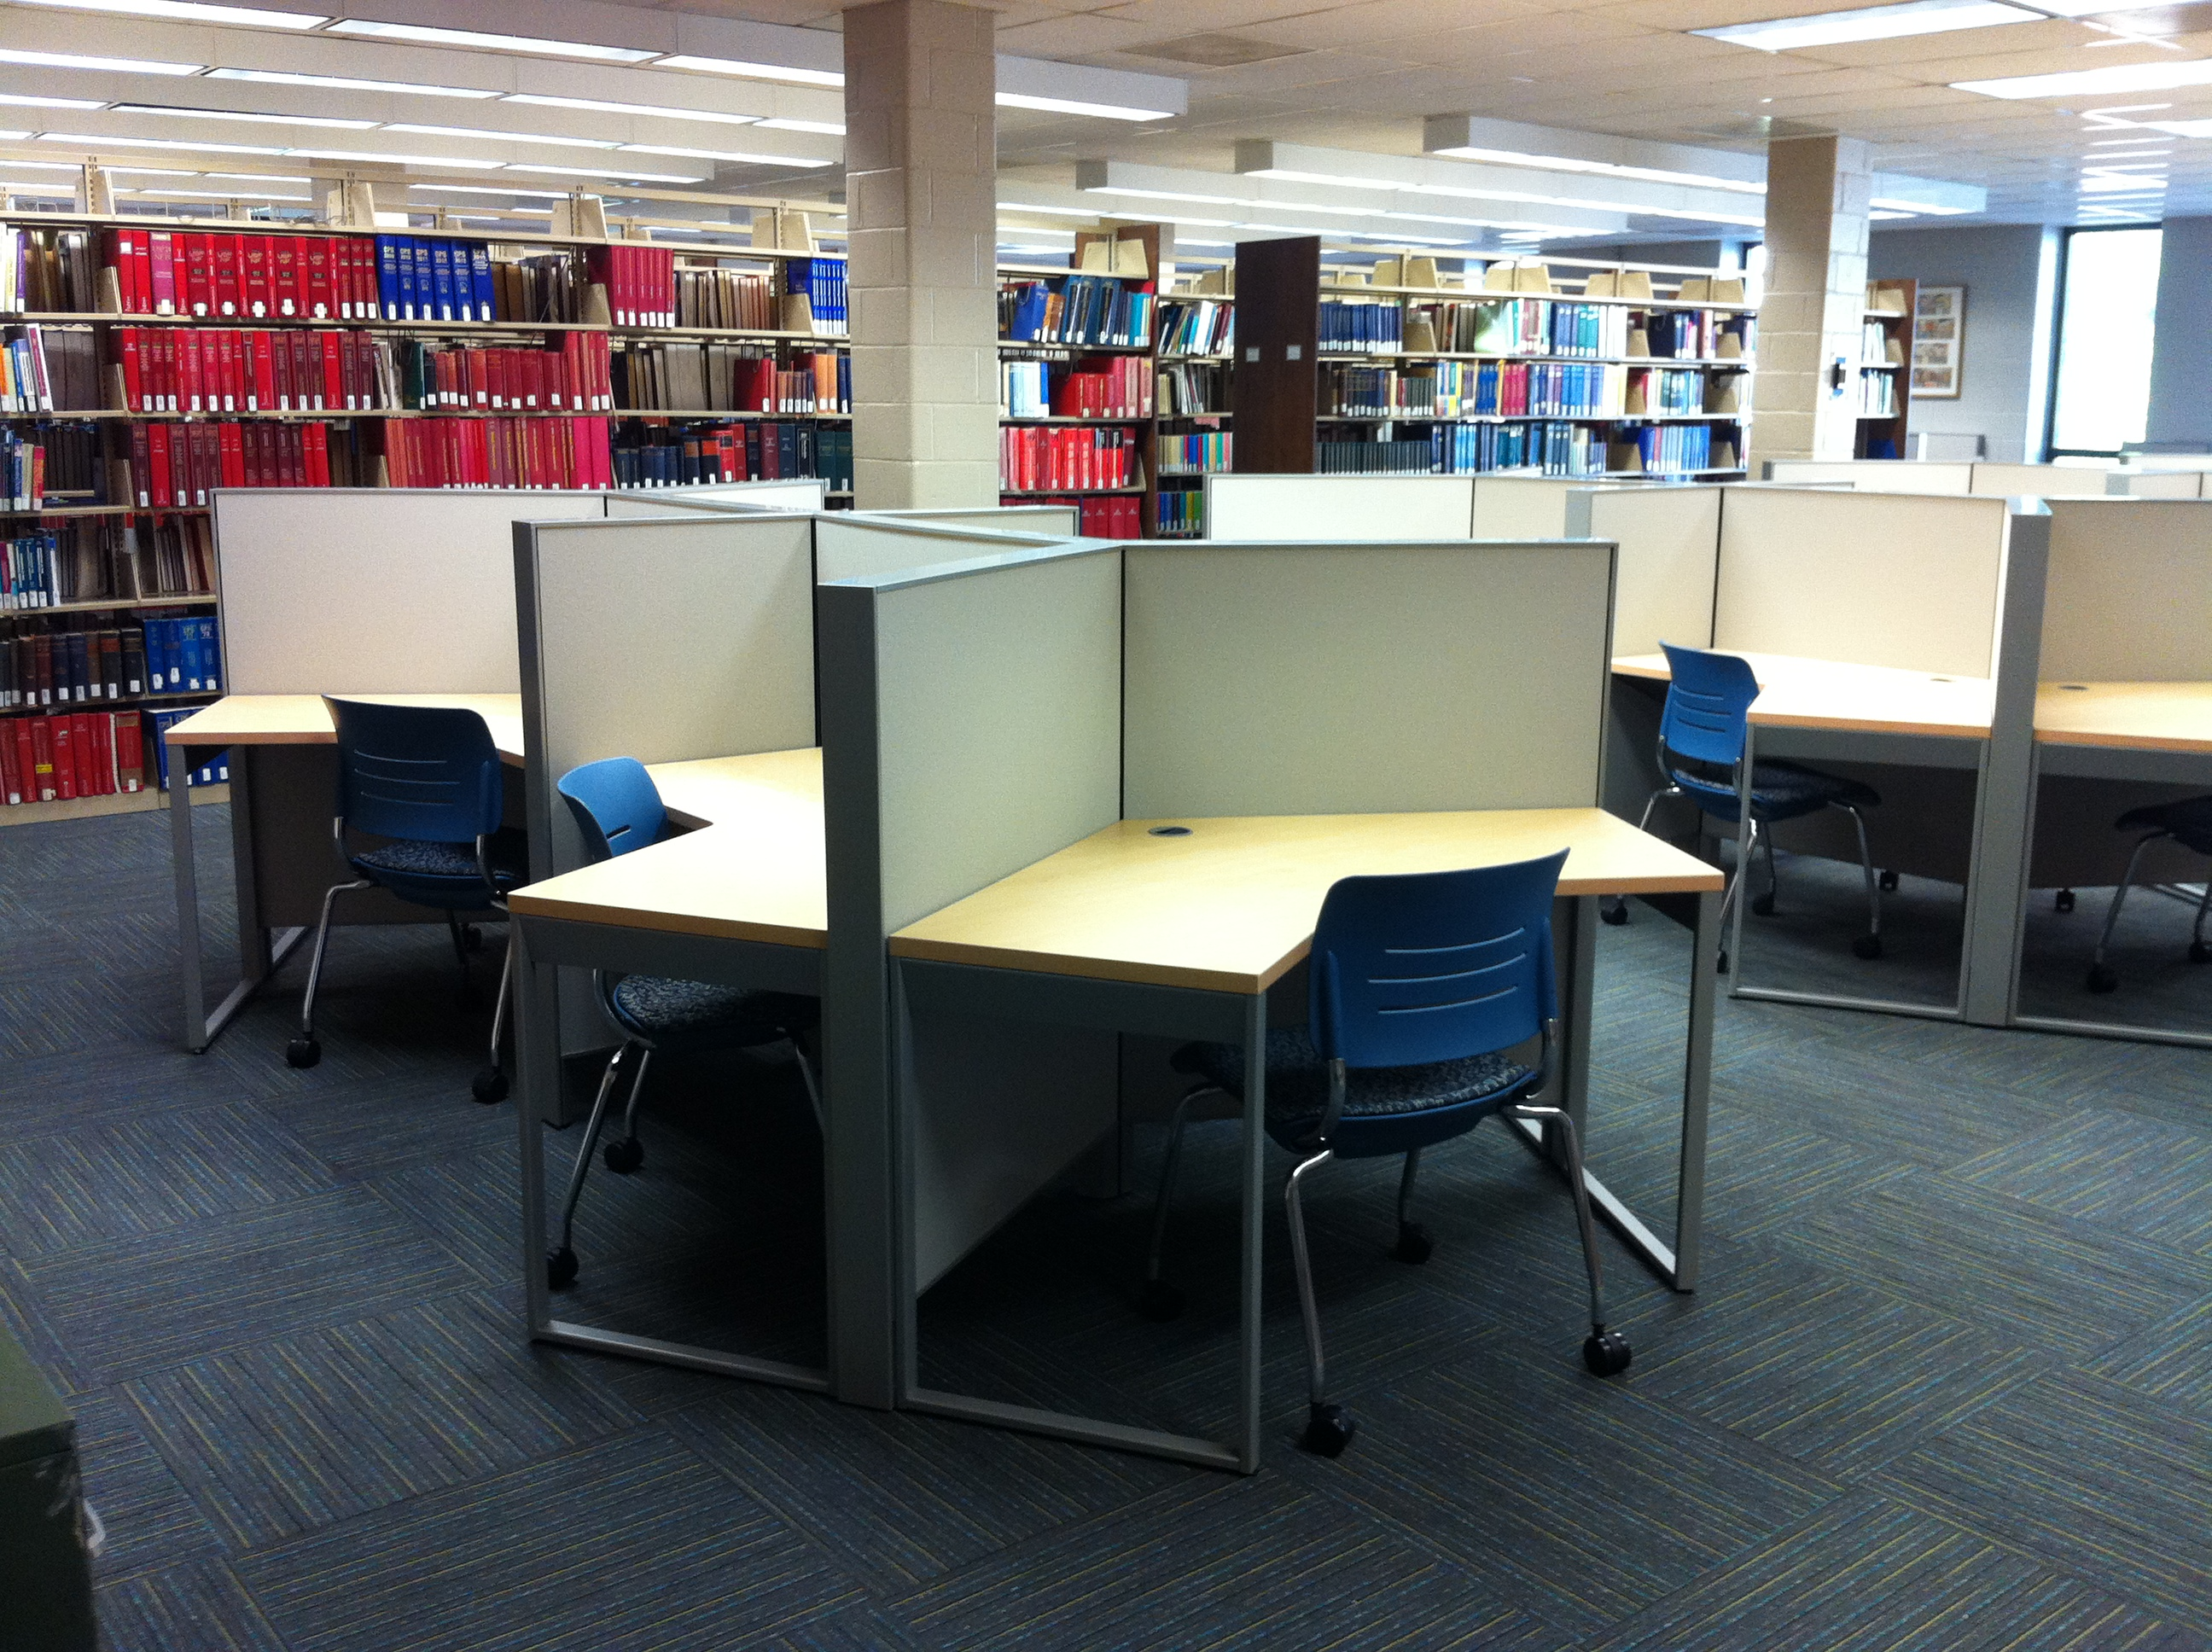 Carrels for Quiet Study